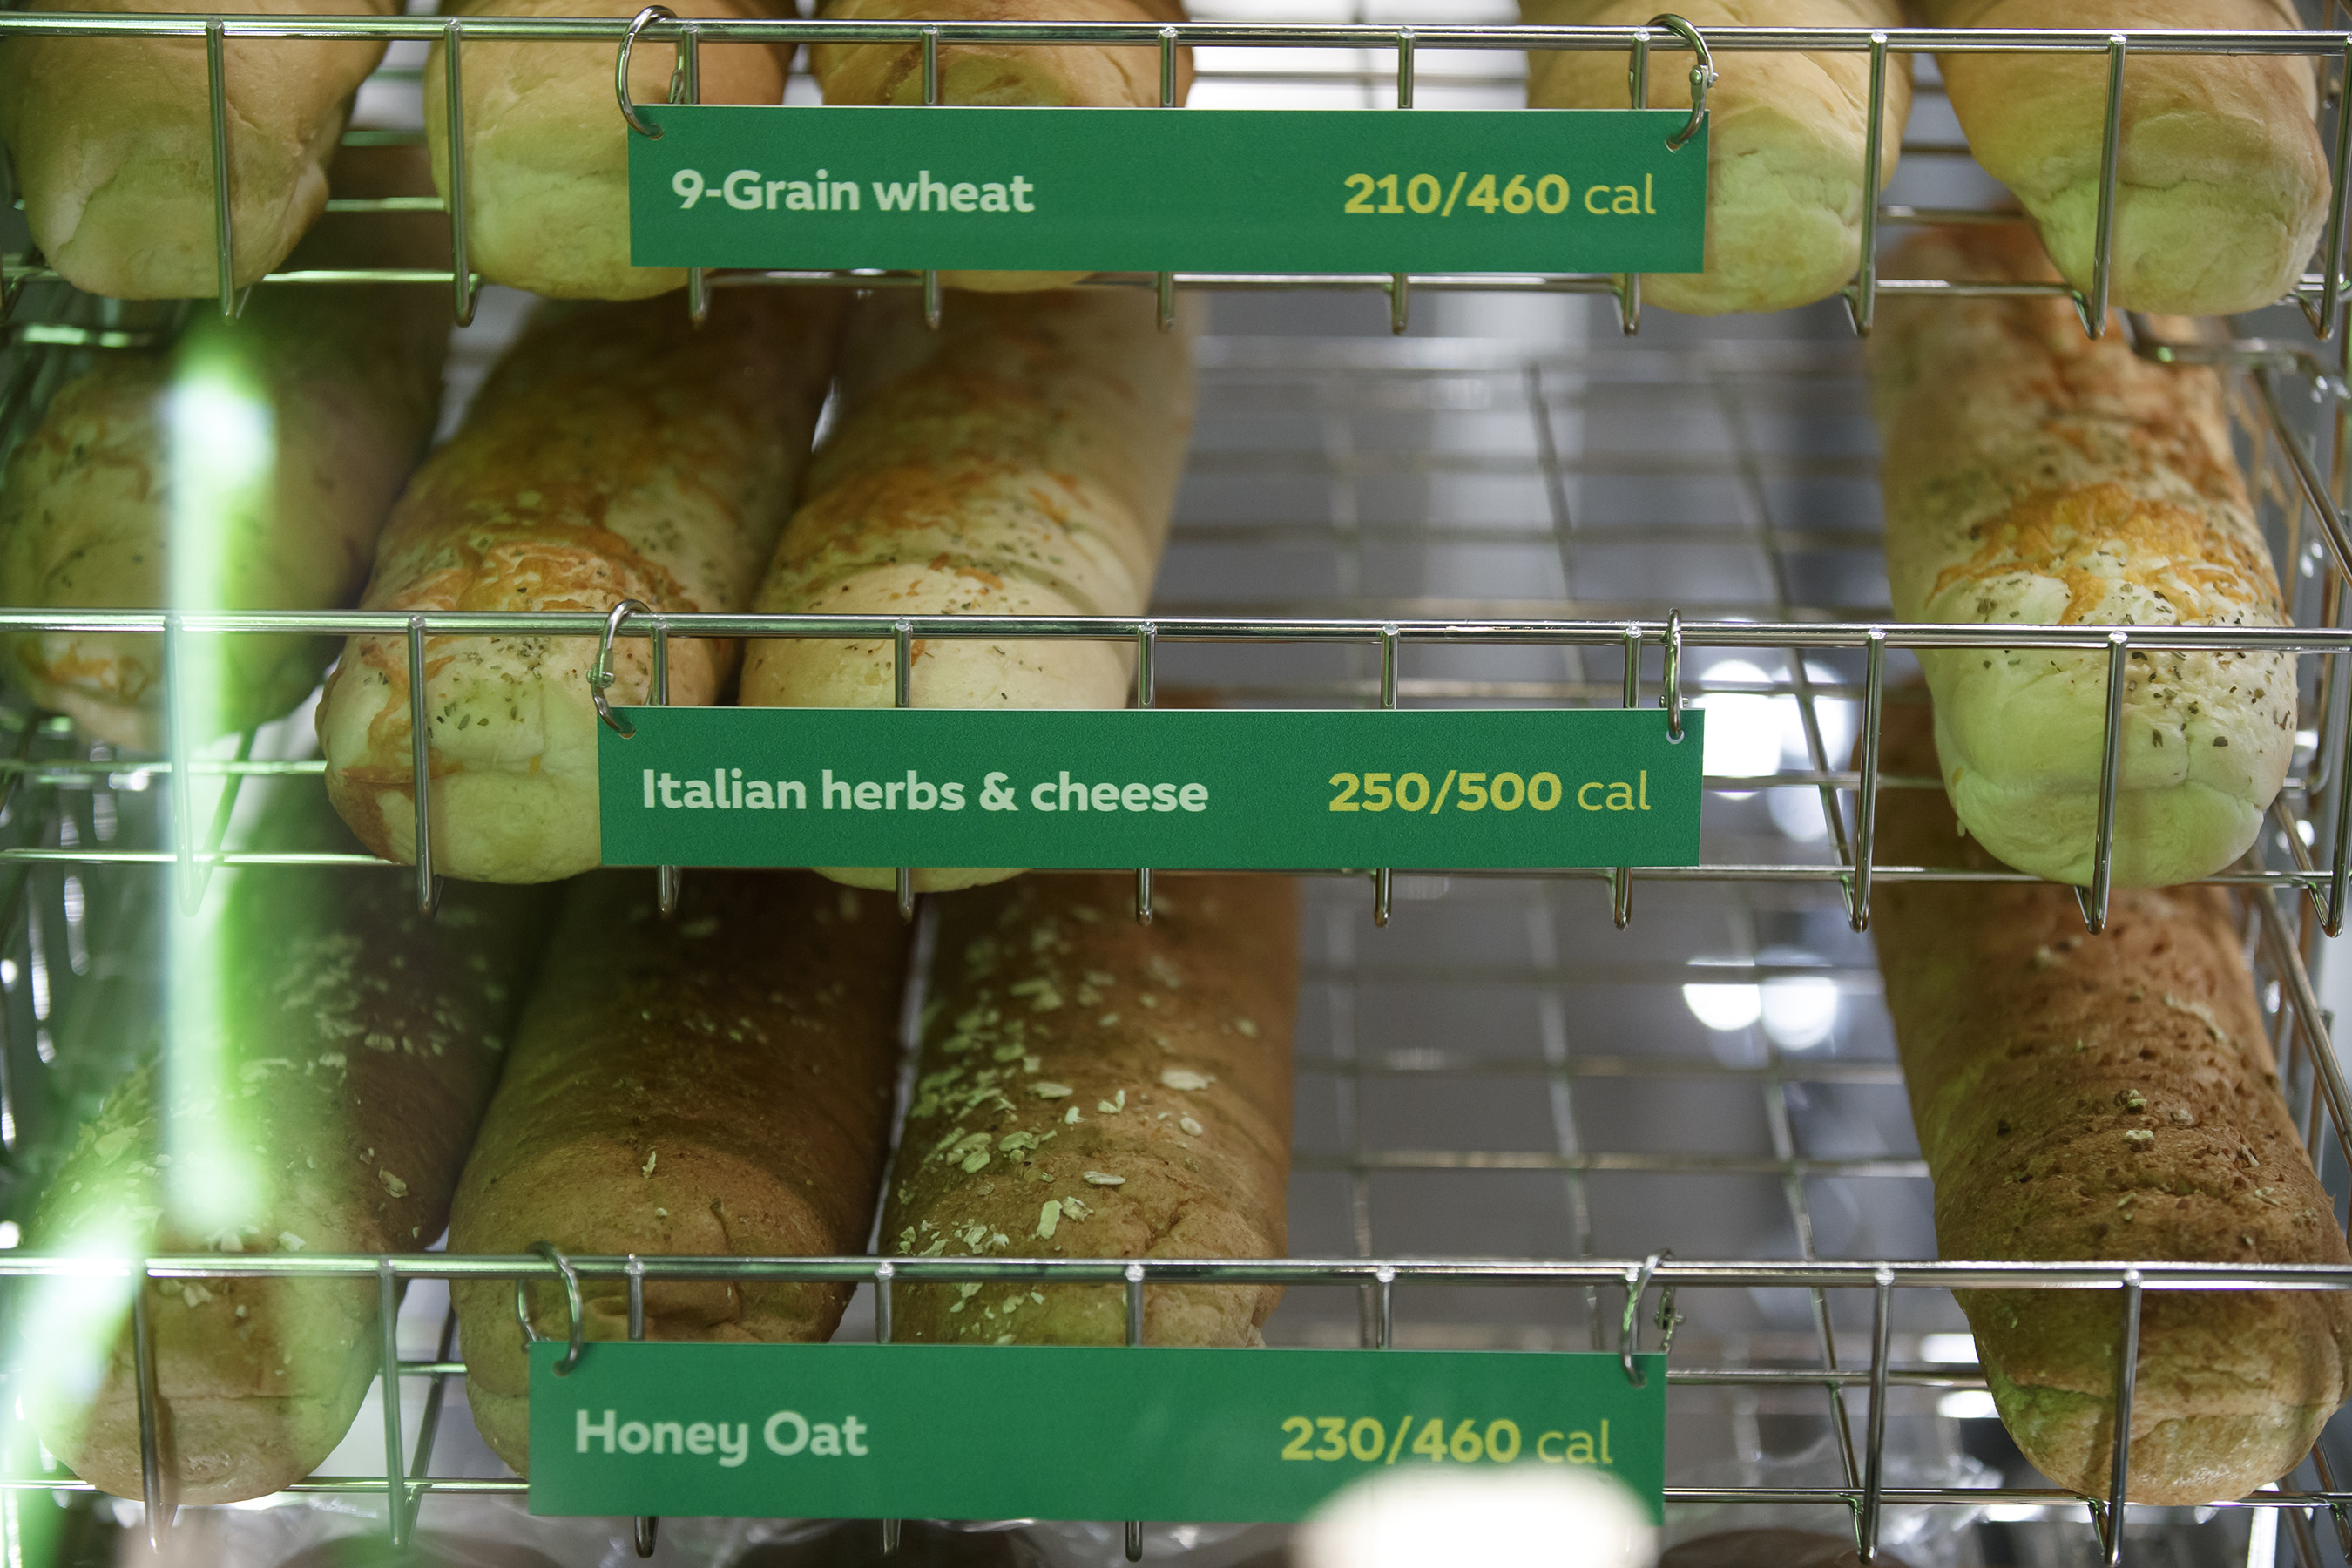 New fresh baked bread displays are featured on the front of the line.